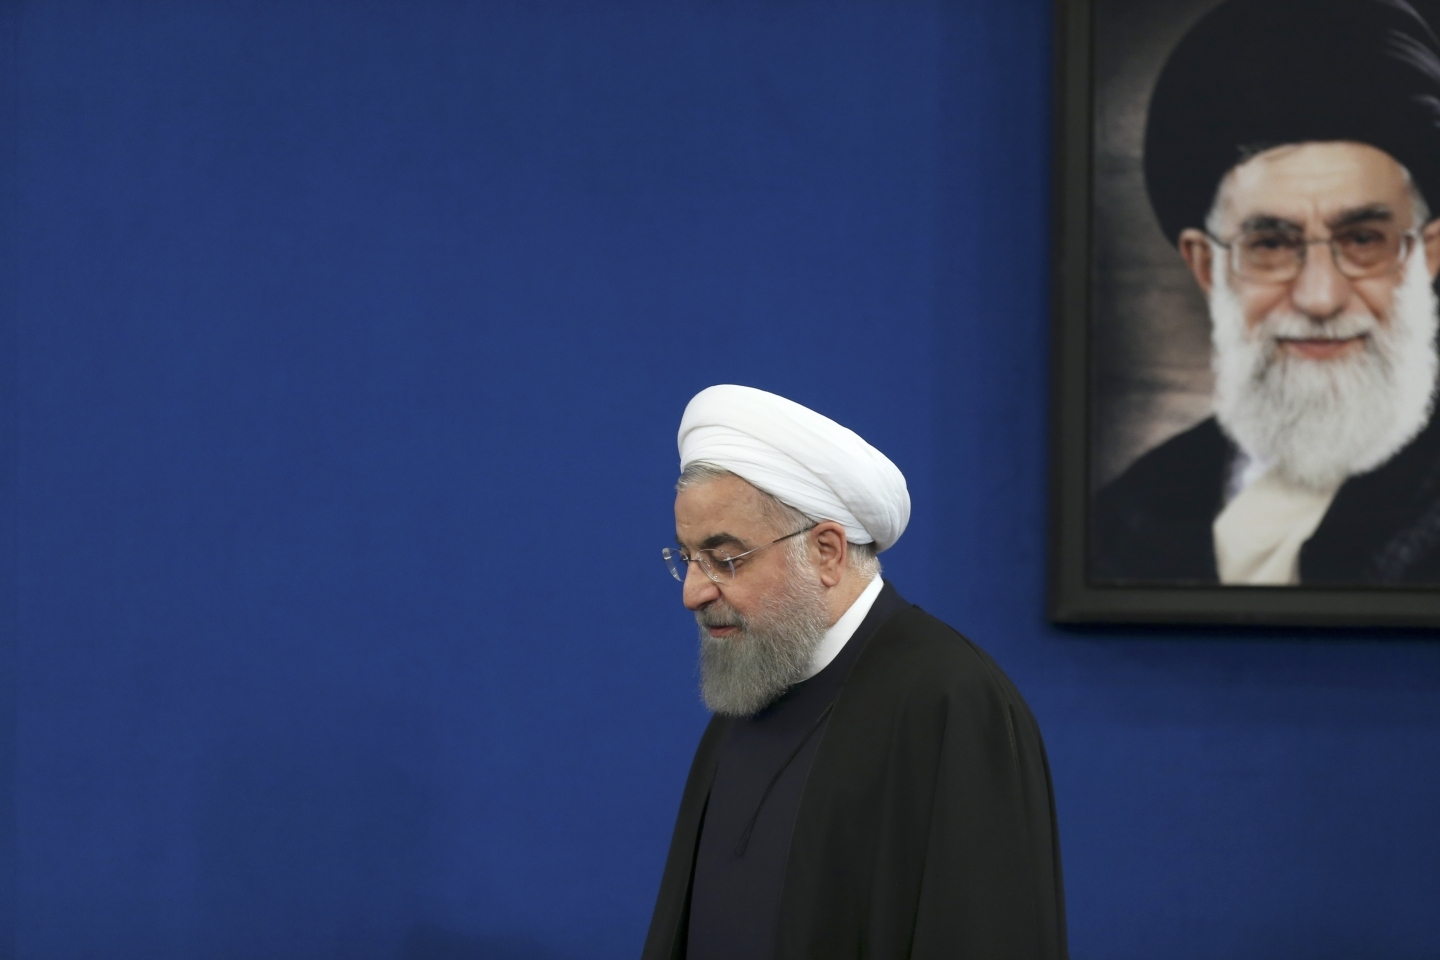 Iranian President Hassan Rouhani arrives for a press conference at the presidency compound in Tehran, Iran, Tuesday, Feb. 6, 2018. A portrait of the Supreme Leader Ayatollah Ali Khamenei hangs on the wall. (AP Photo/Vahid Salemi)